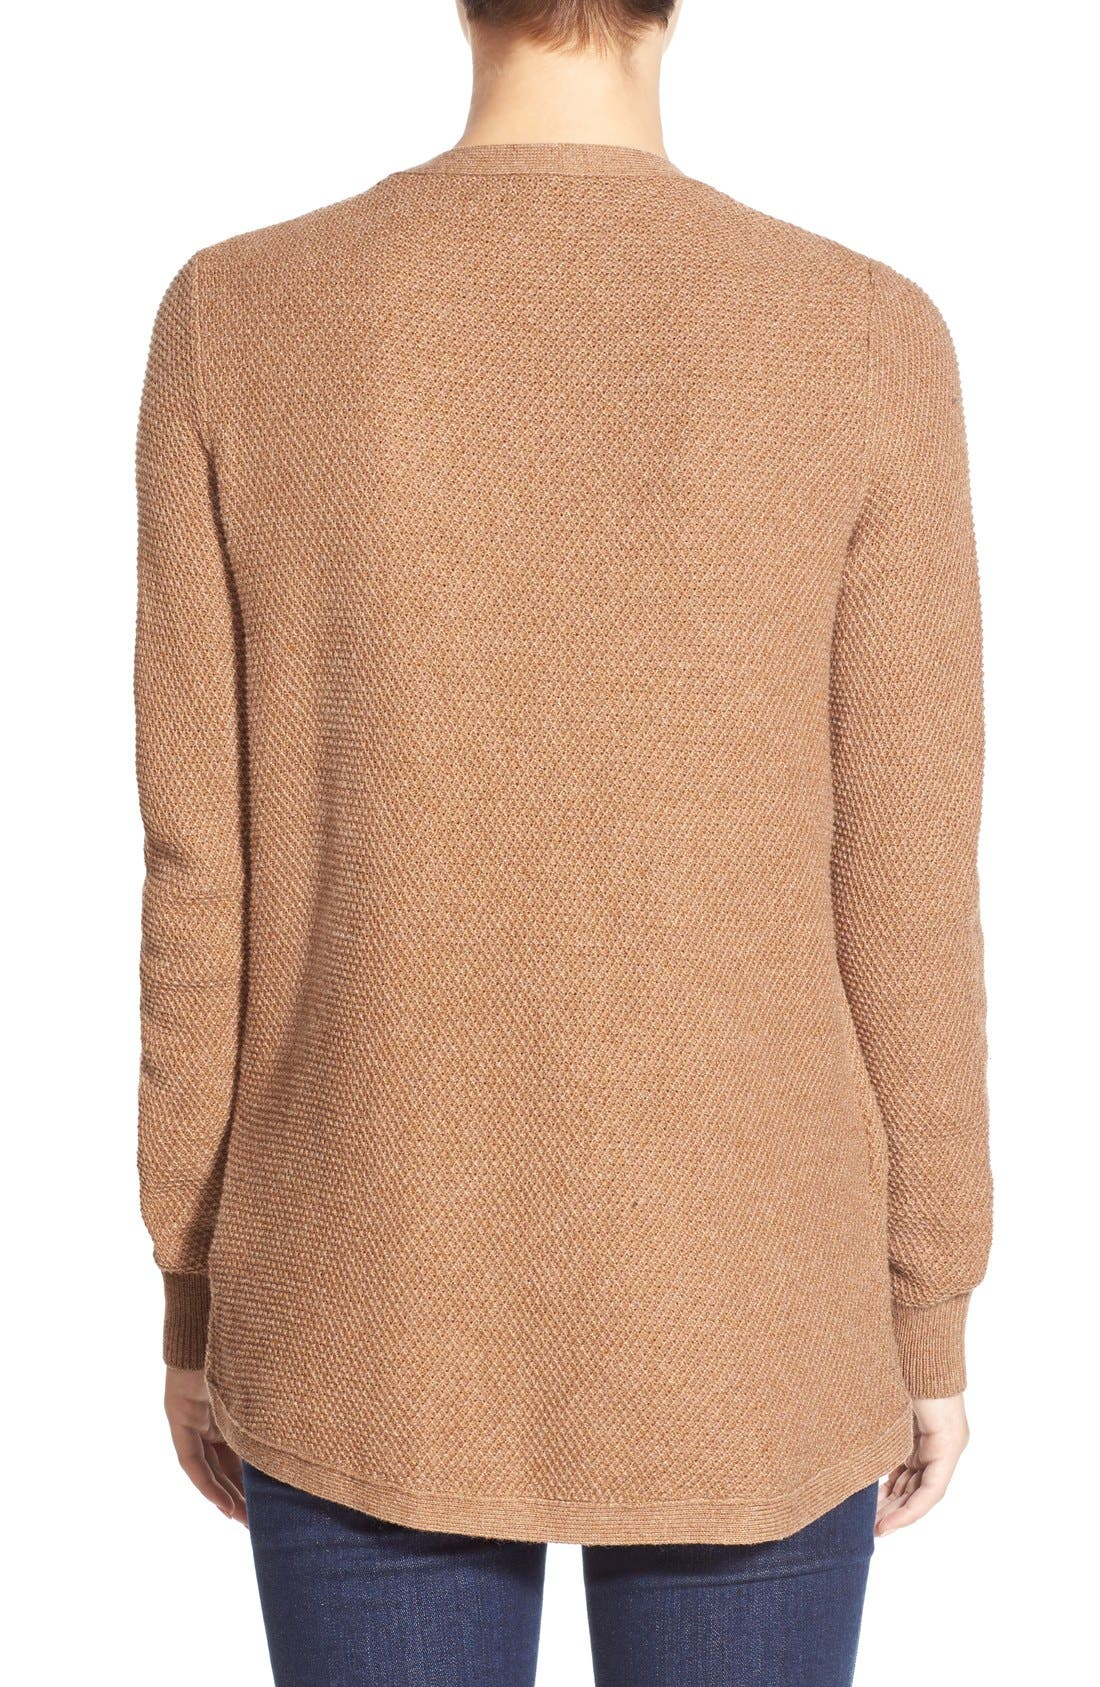 'Feature' Pullover Sweater,                             Alternate thumbnail 3, color,                             250